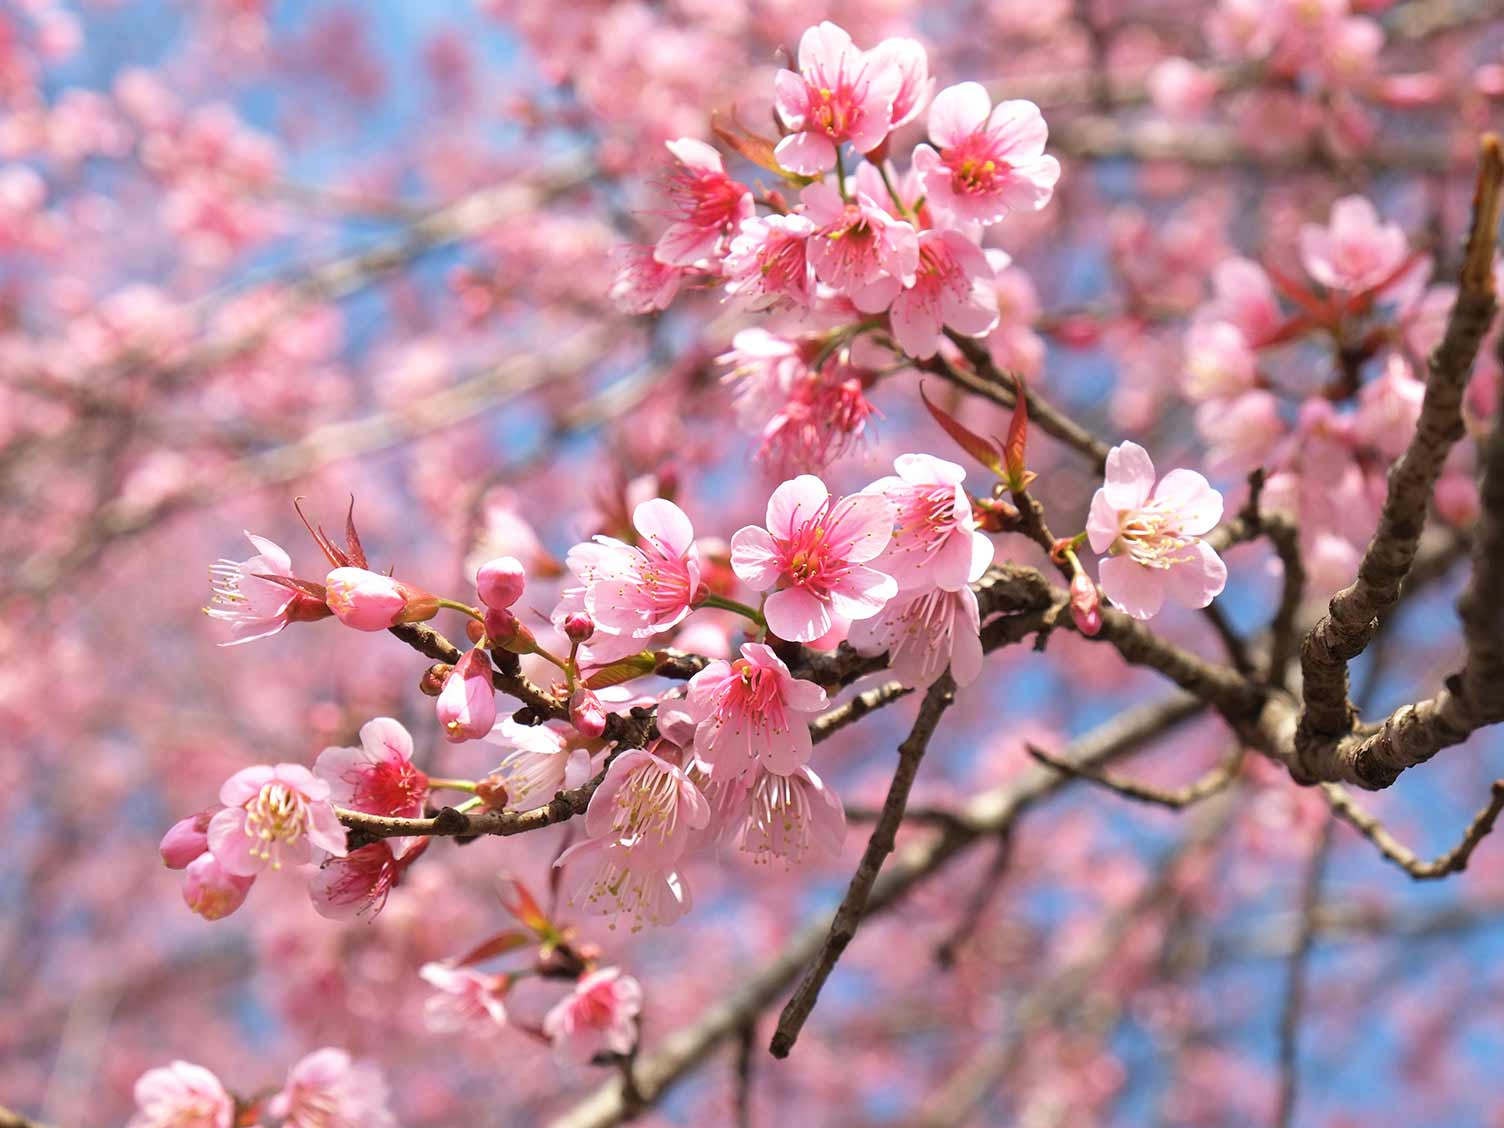 How To Grow A Flowering Cherry Tree